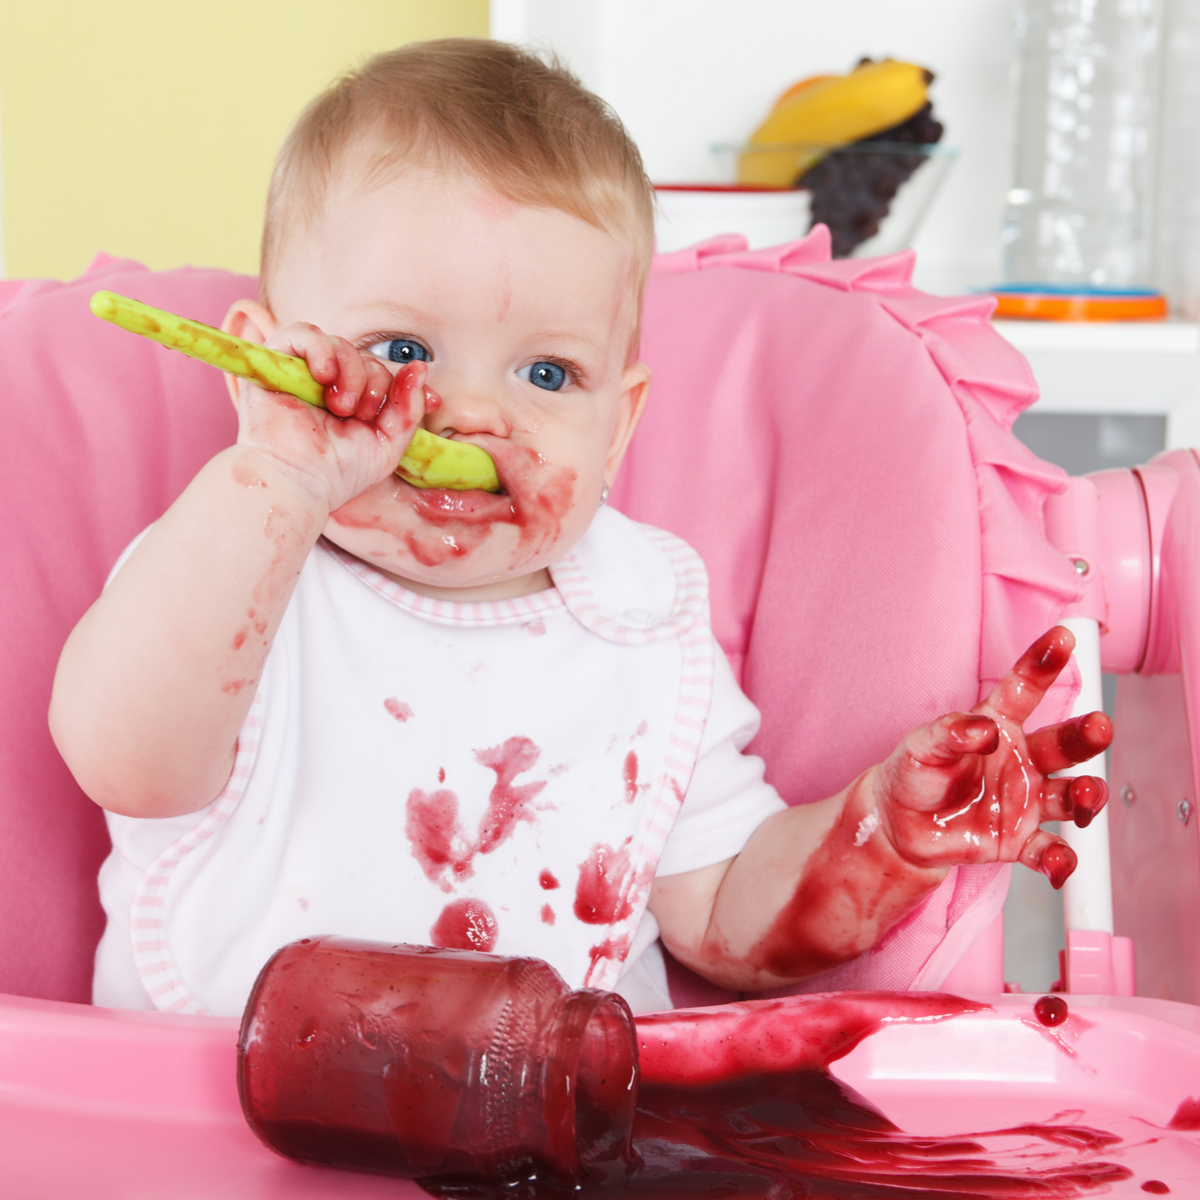 Successfully start baby on solids